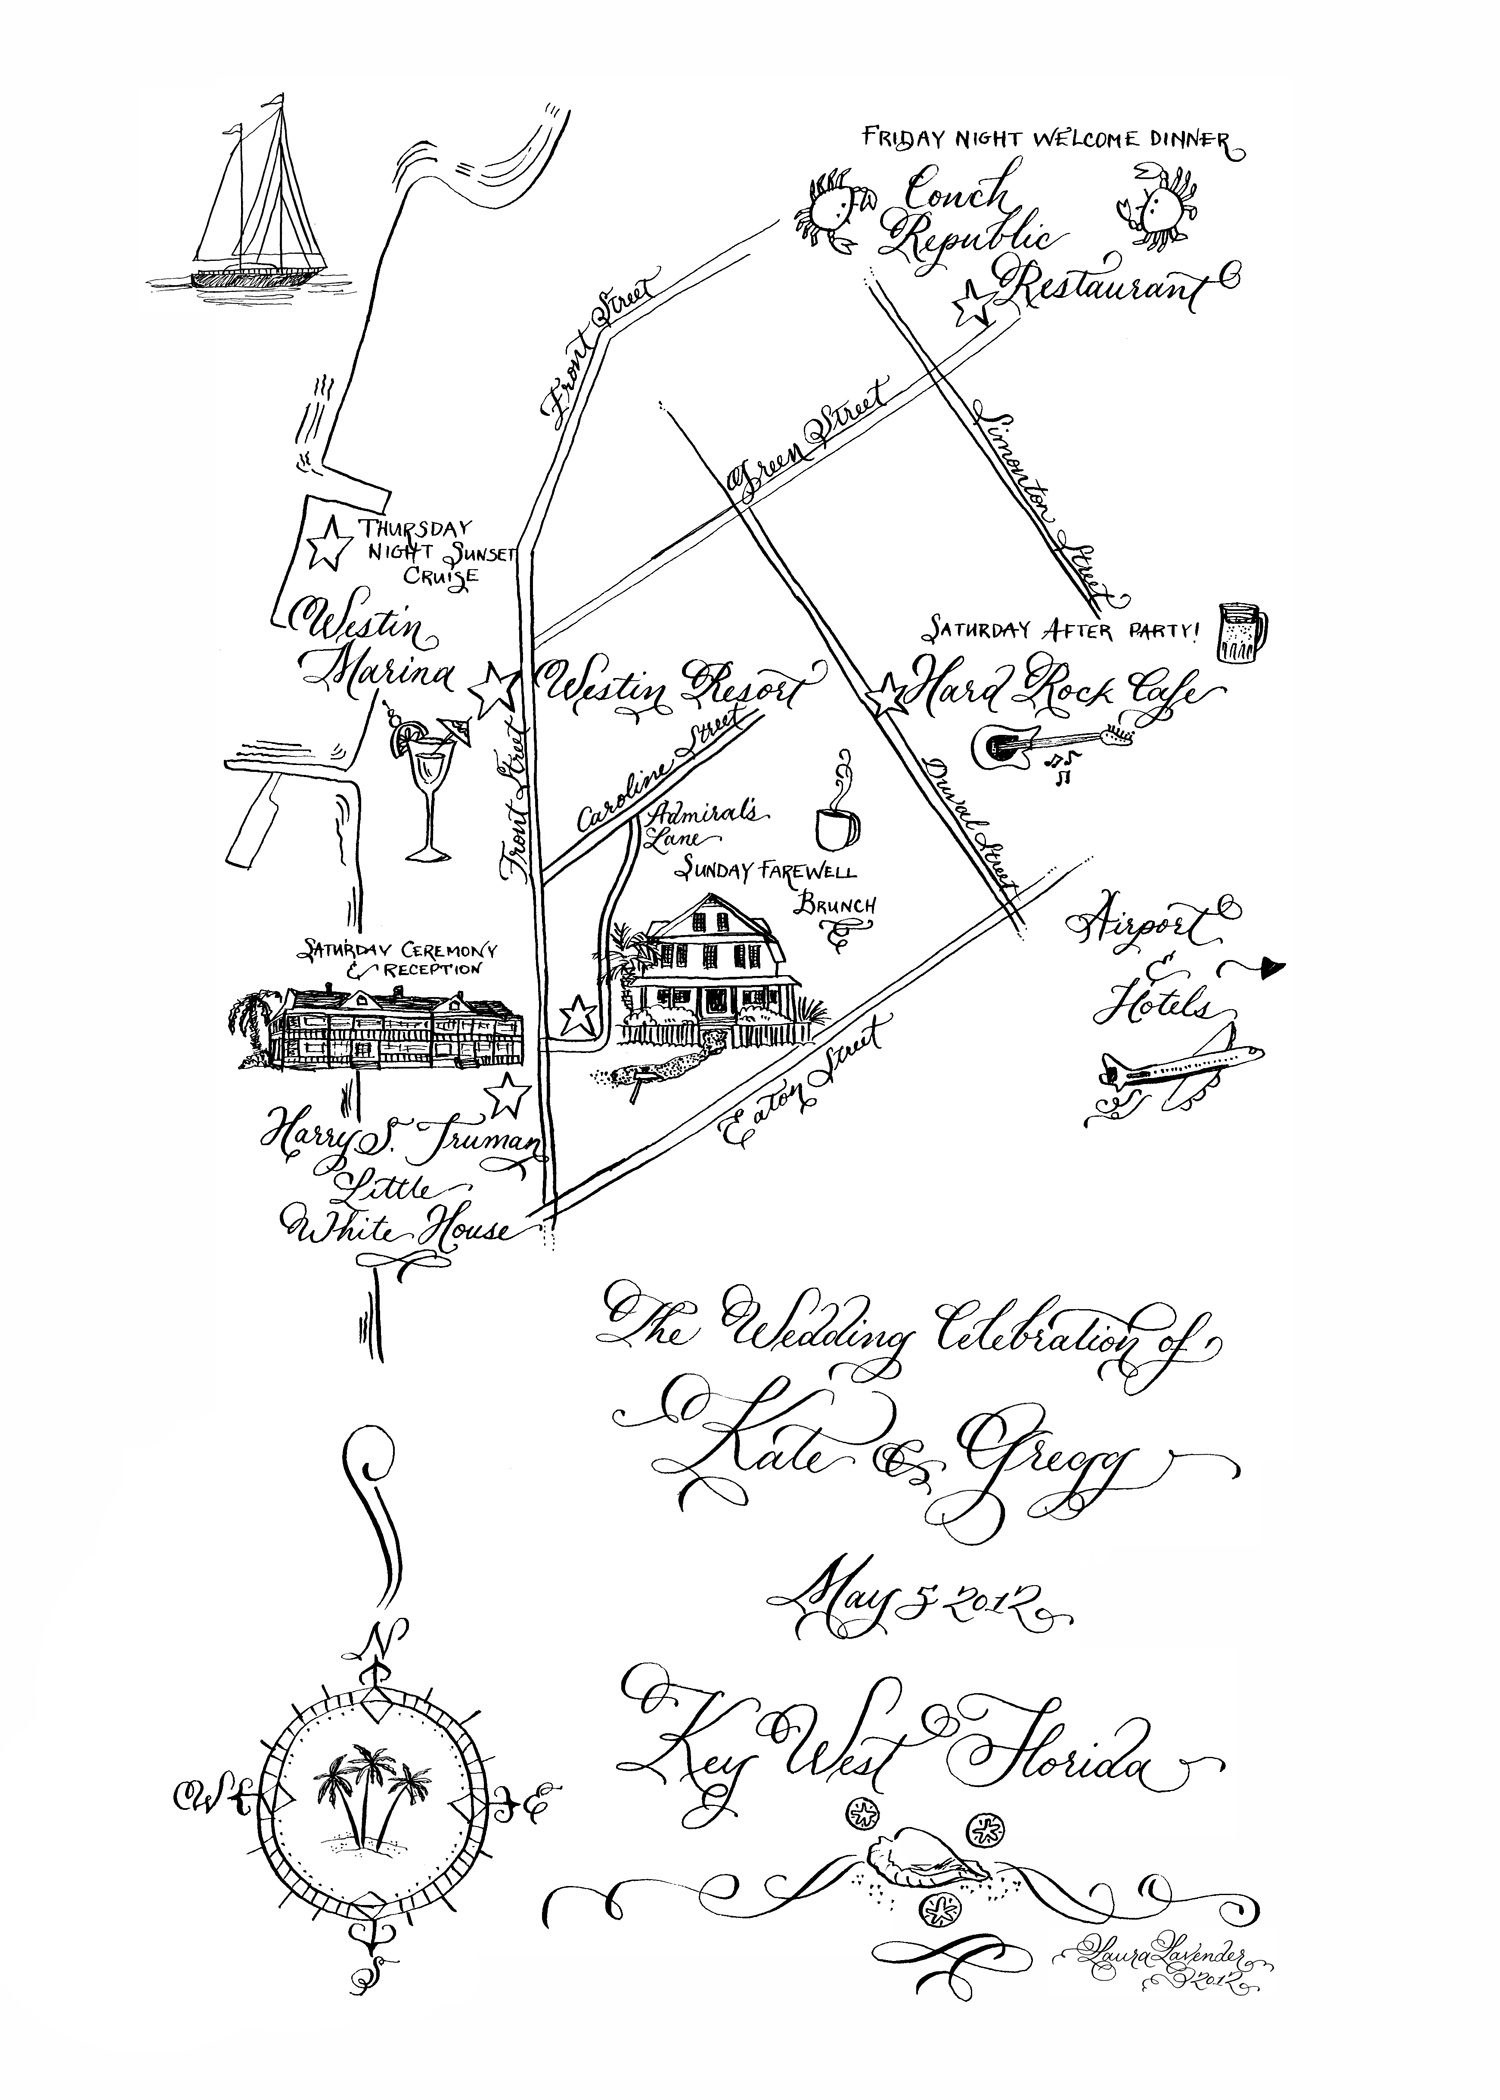 This hand lettered map for a wedding in Key West was created with pointed pen and ink on white cotton paper, then scanned at high resolution for printing.